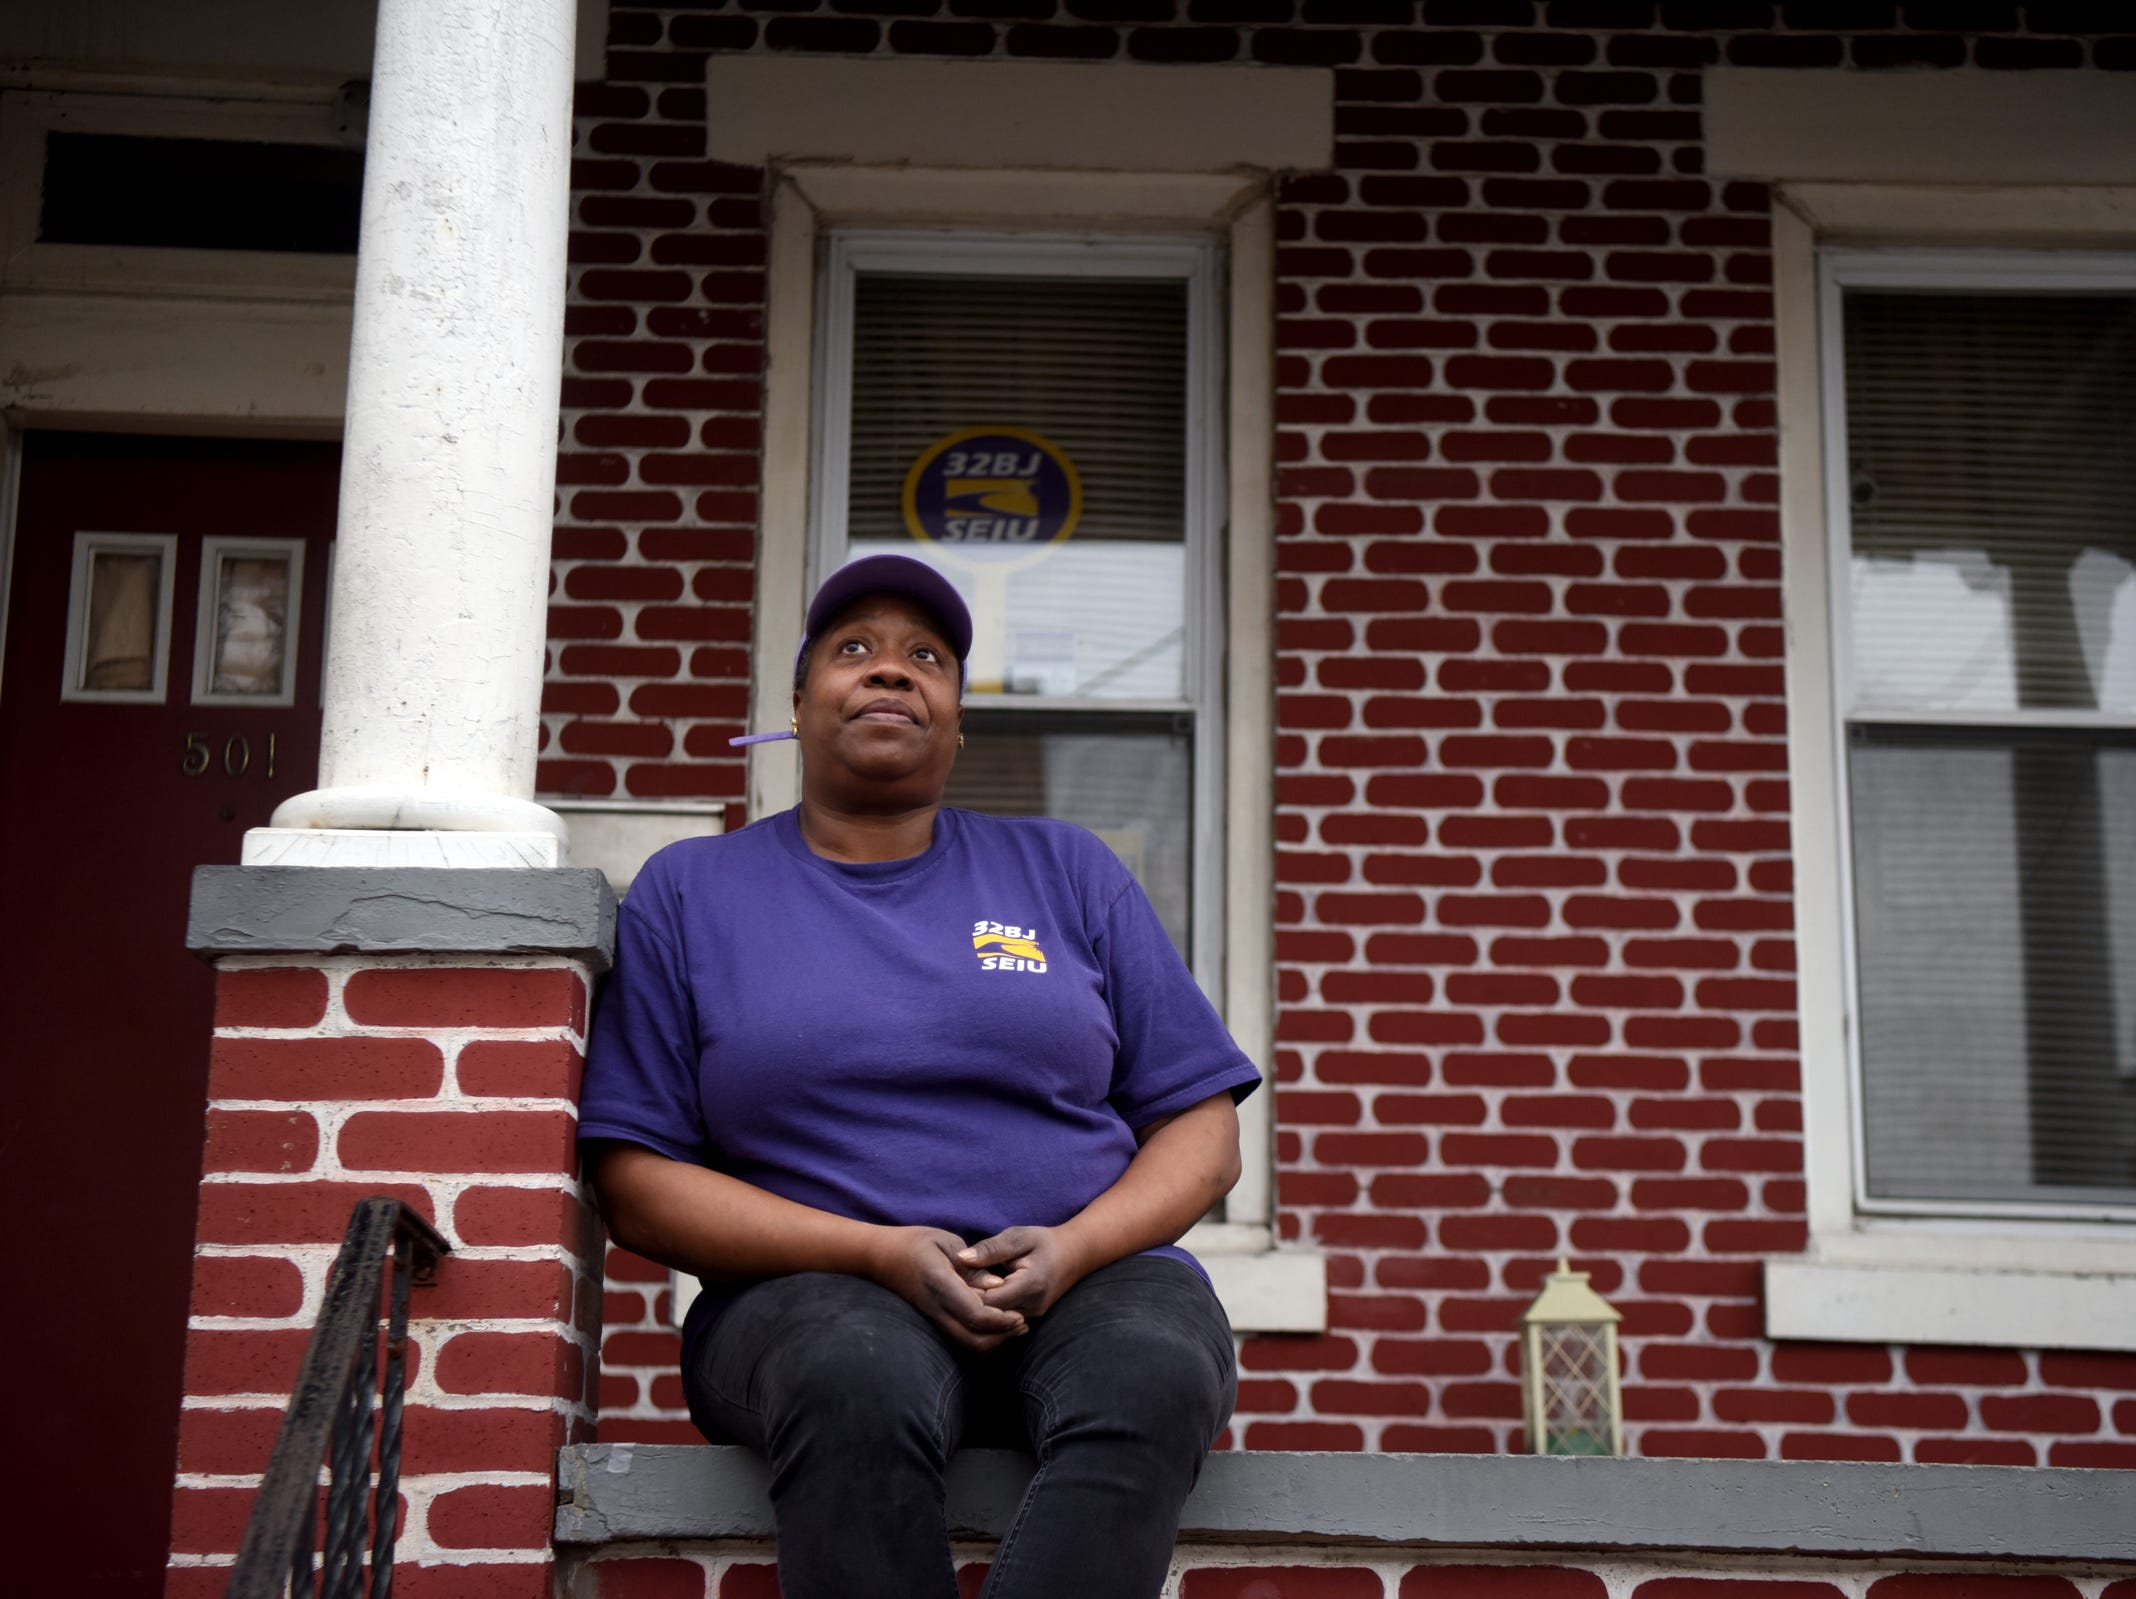 Leslie Hall sticks to a strict budget to make her salary of $11.90 an hour as a food service worker, stretch out to meet her needs. Hall, a homeowner in Trenton, is optimistic and excited for the recent bill Gov. Murphy signed increasing NJ's minimum wage to $15 an hour.